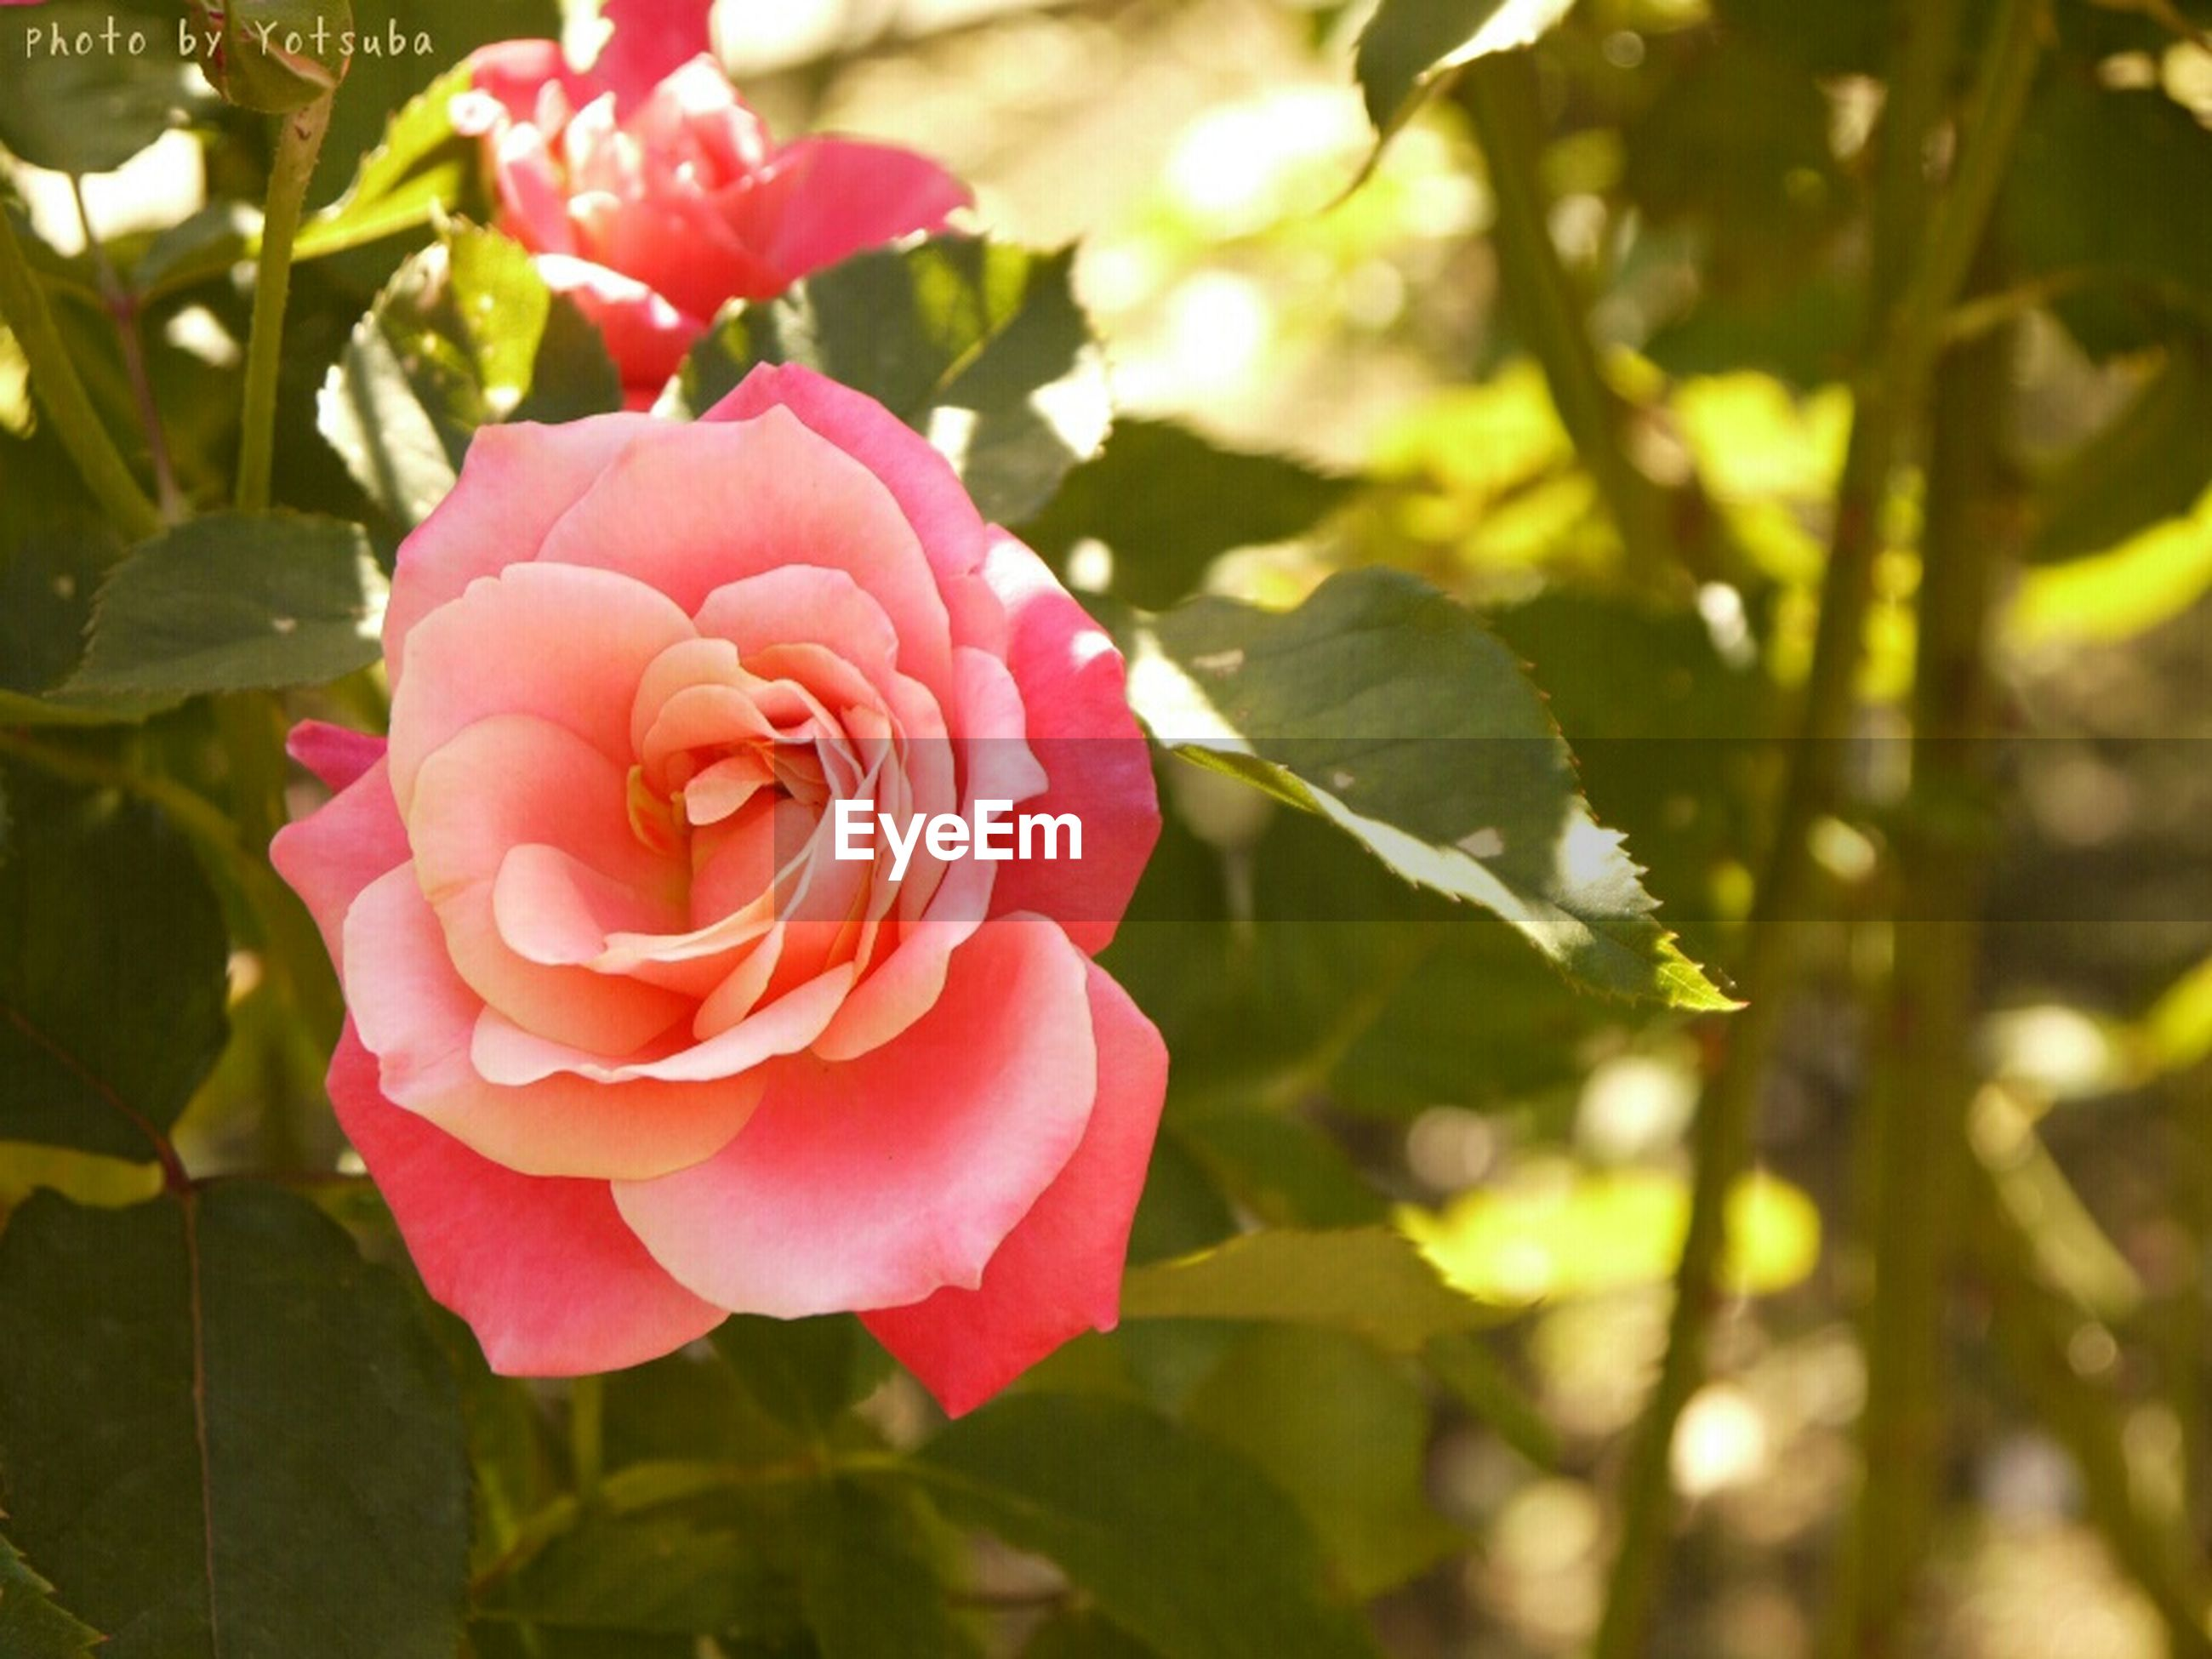 flower, petal, freshness, fragility, growth, flower head, beauty in nature, leaf, close-up, pink color, blooming, focus on foreground, plant, nature, rose - flower, in bloom, park - man made space, day, blossom, red